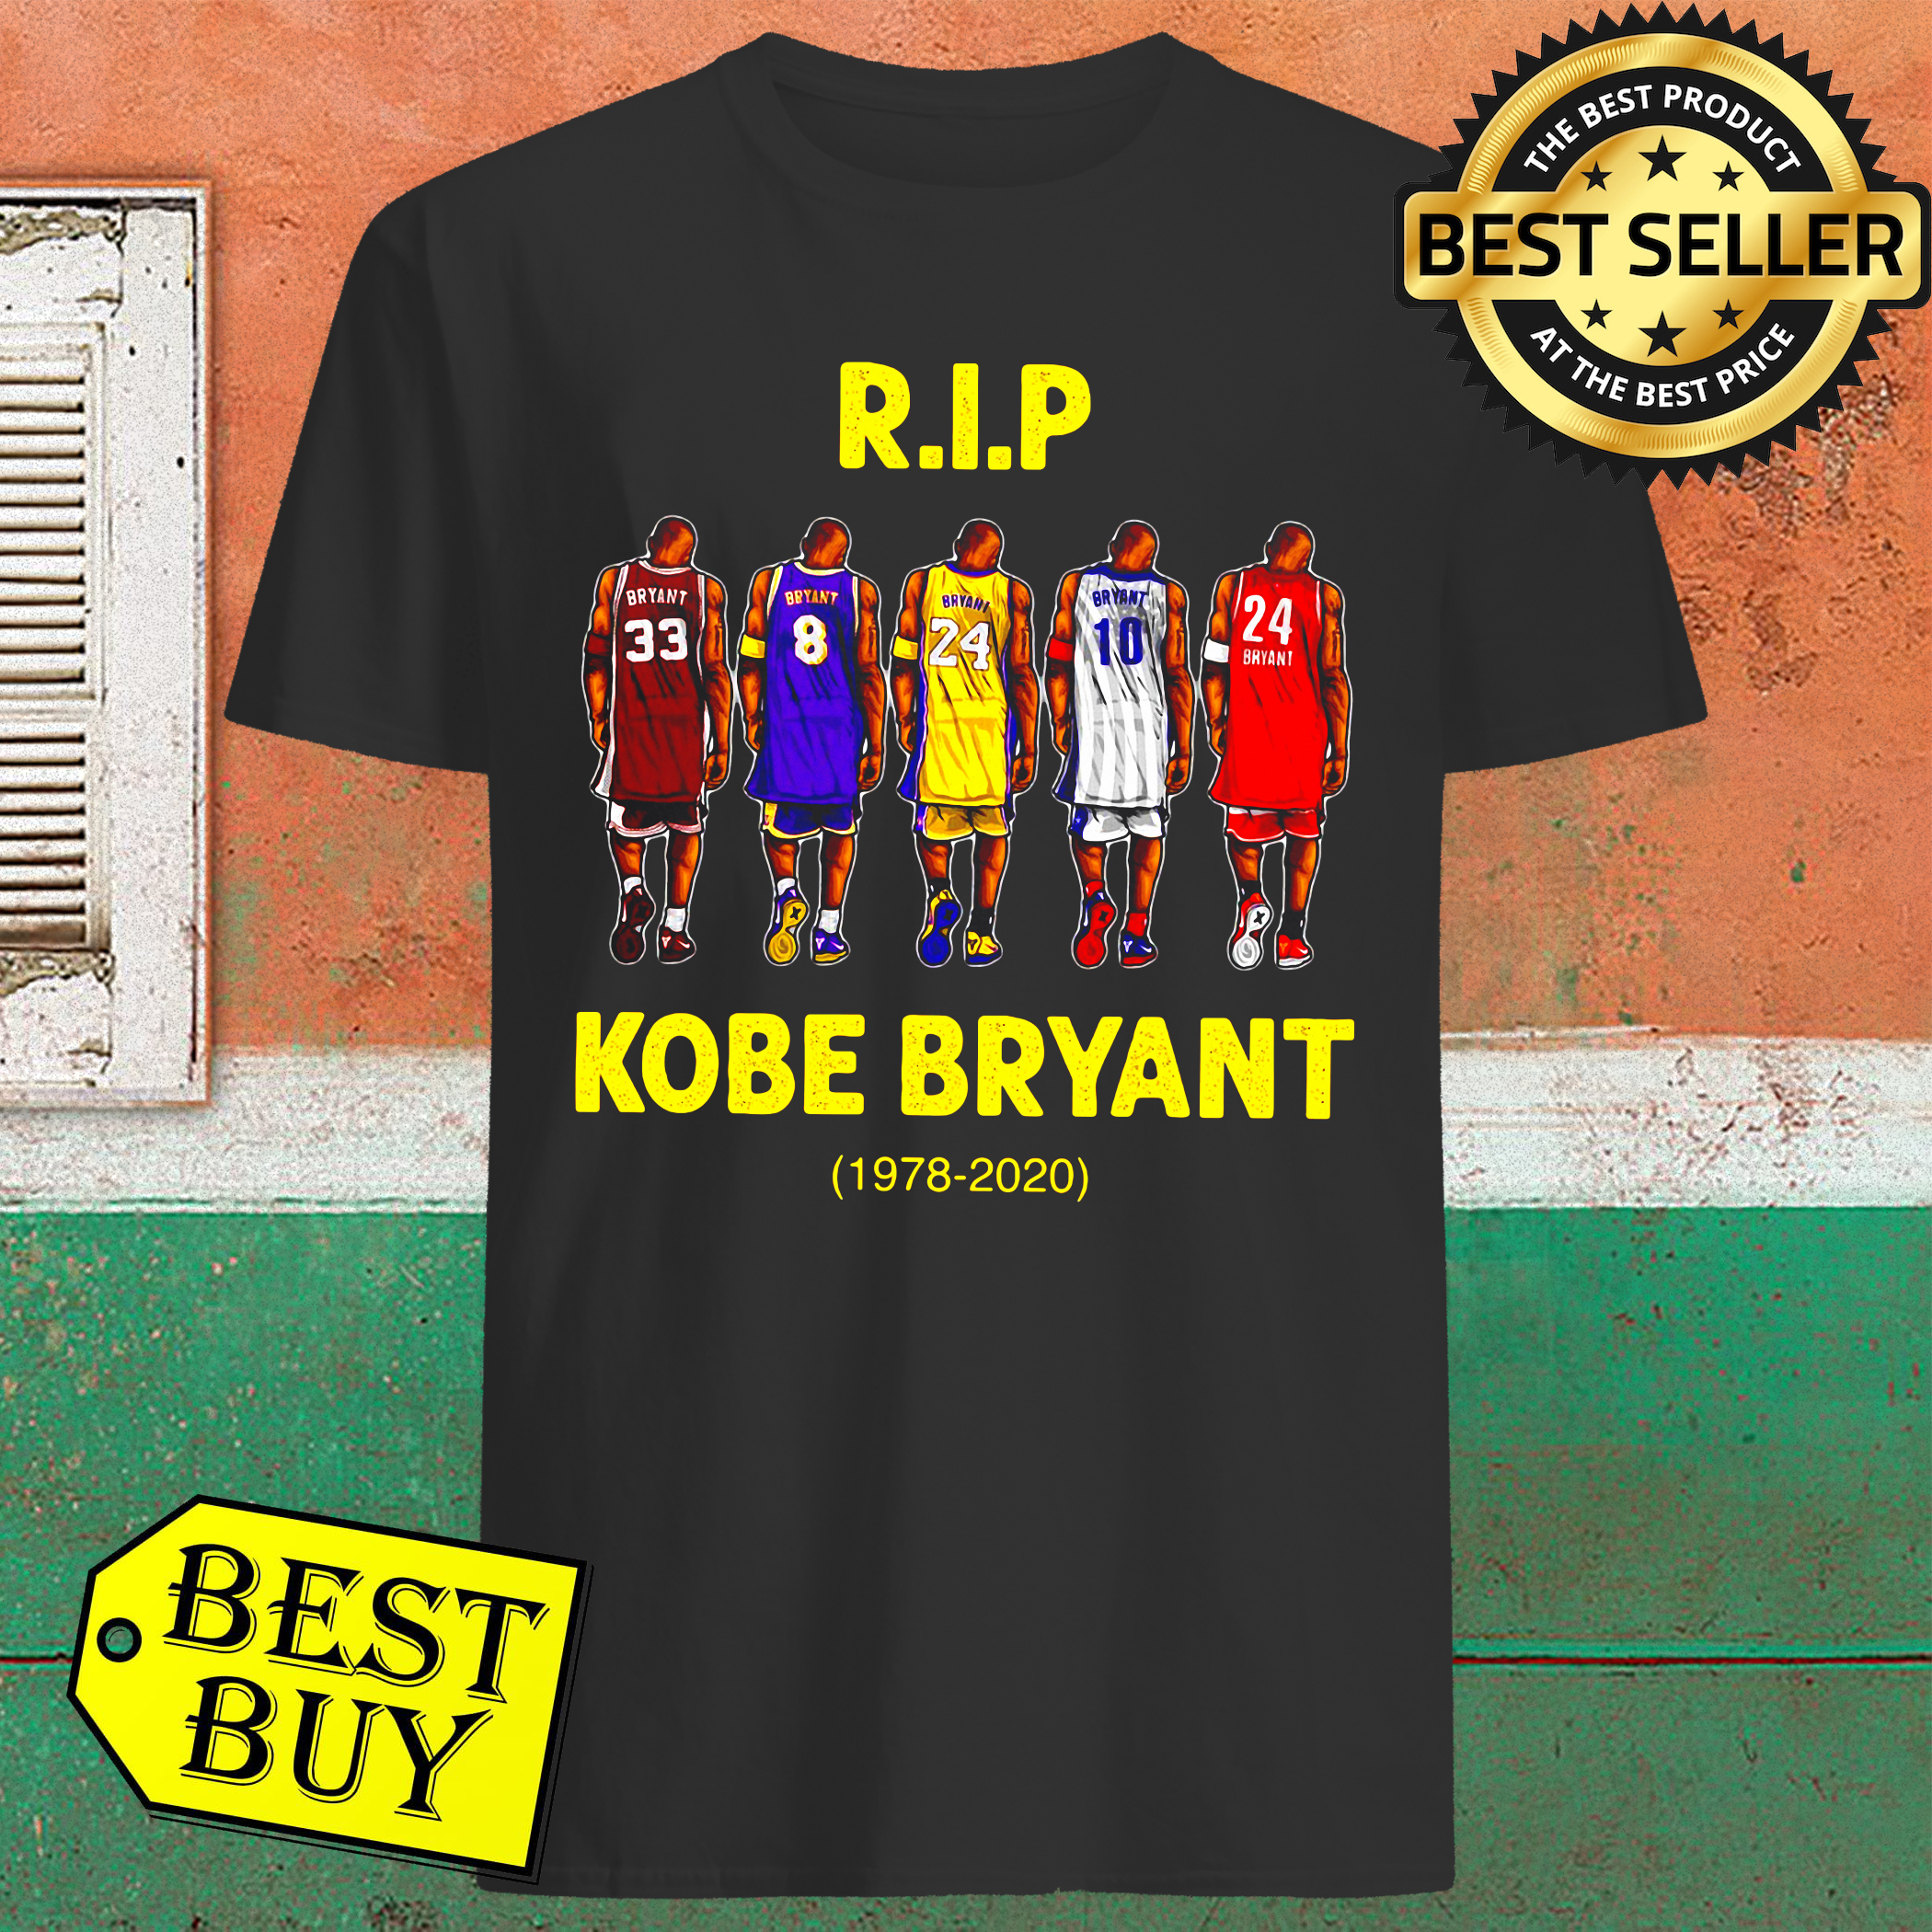 Rip Kobe Bryant greatest of all time 1978-2020 Shirt